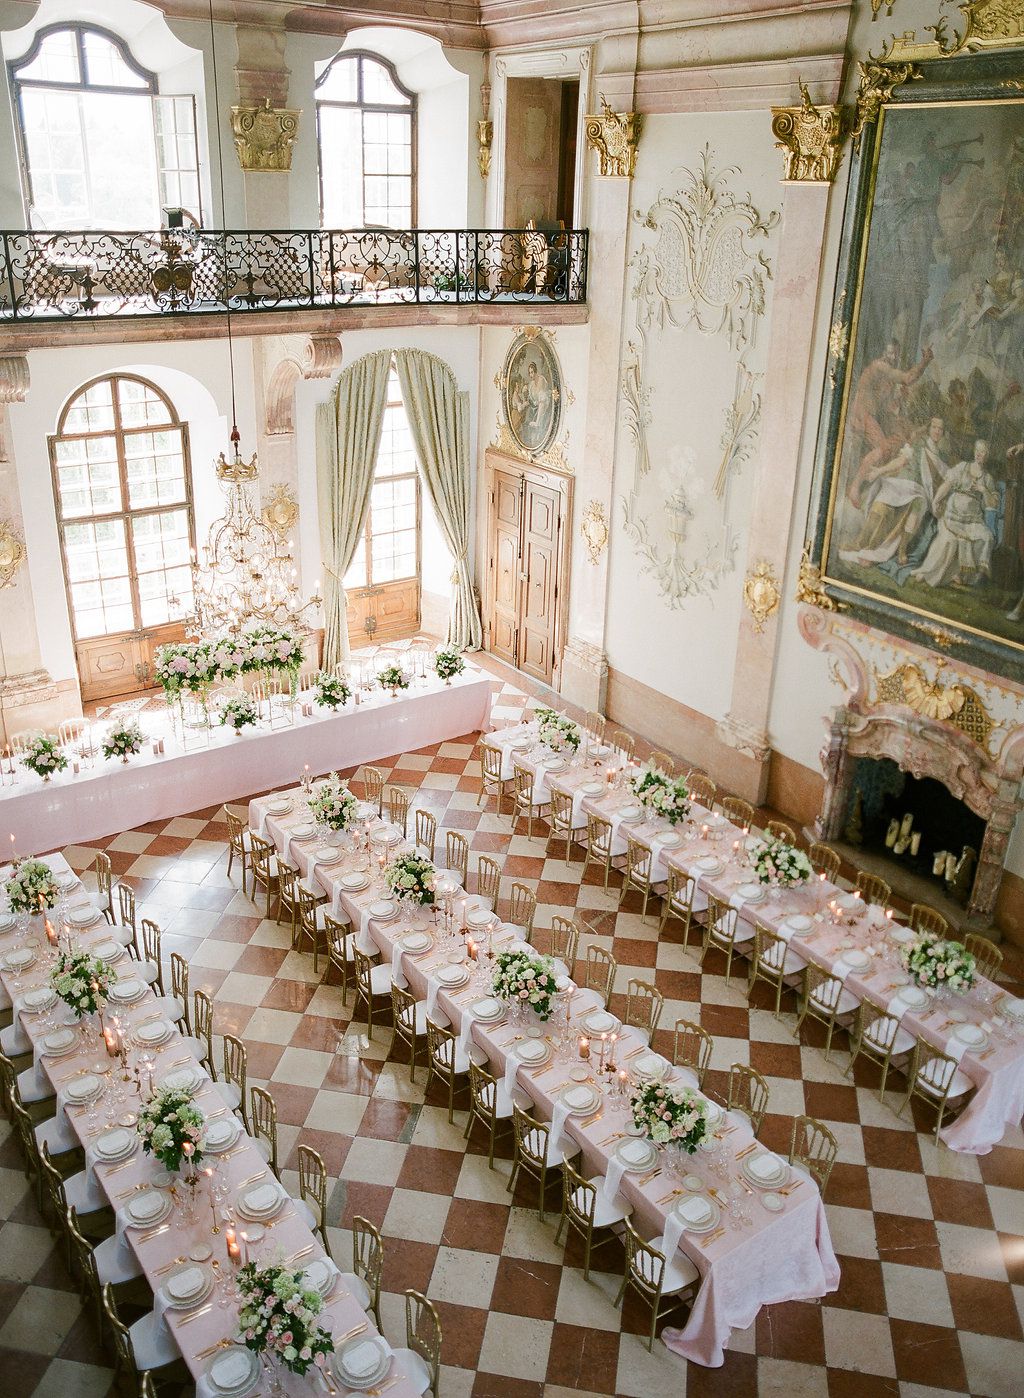 Greg_Finck_AVeryBelovedWedding_Salzburg_ canigueralmesasconesencia rental